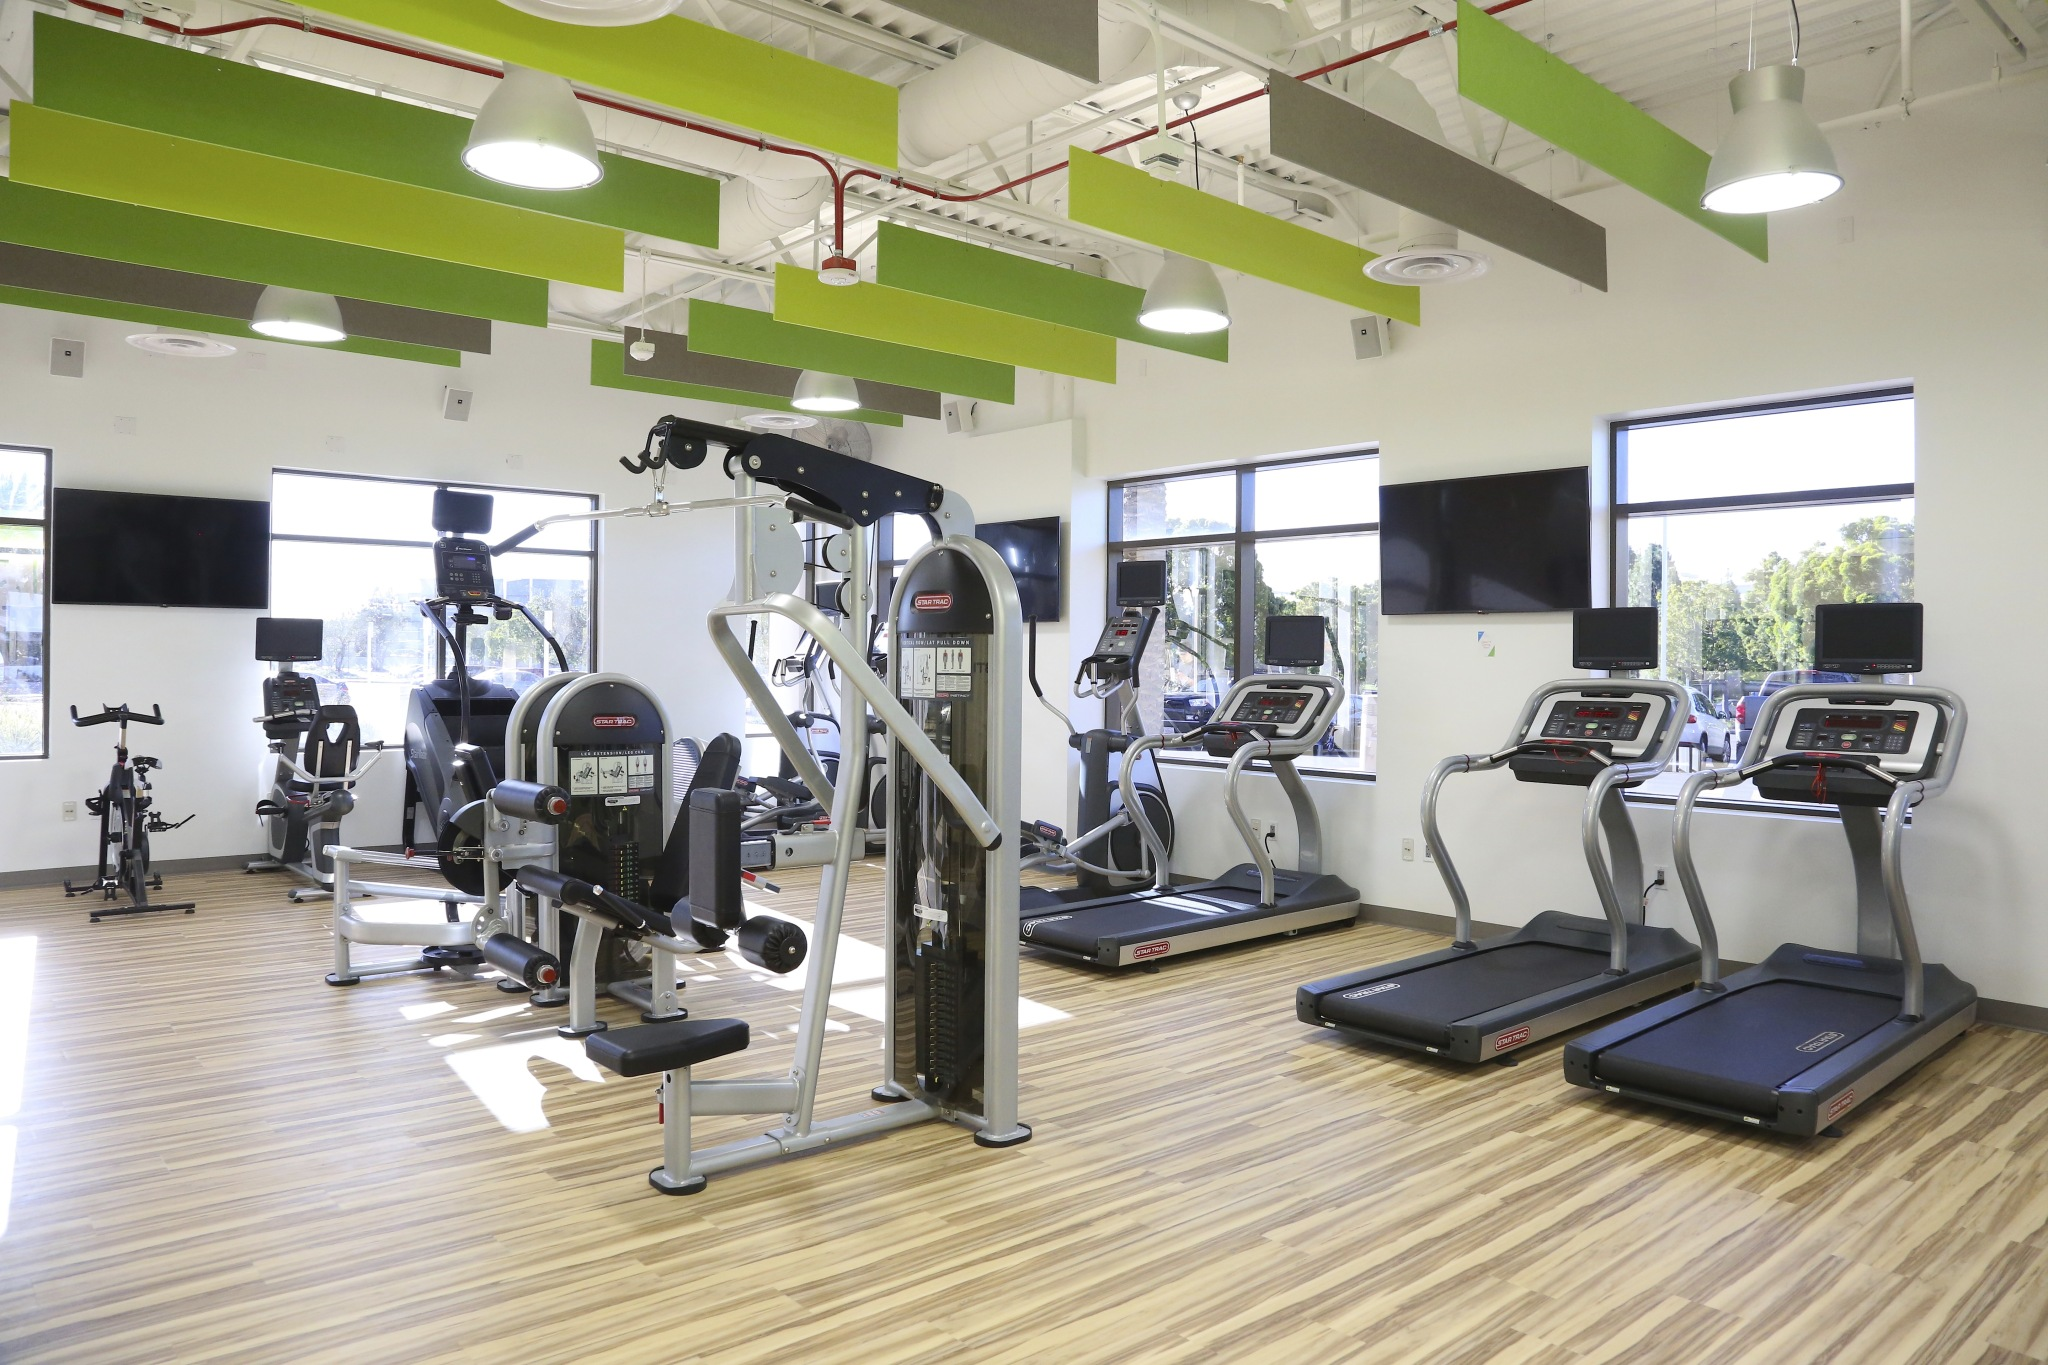 Lytx Headquarters gym